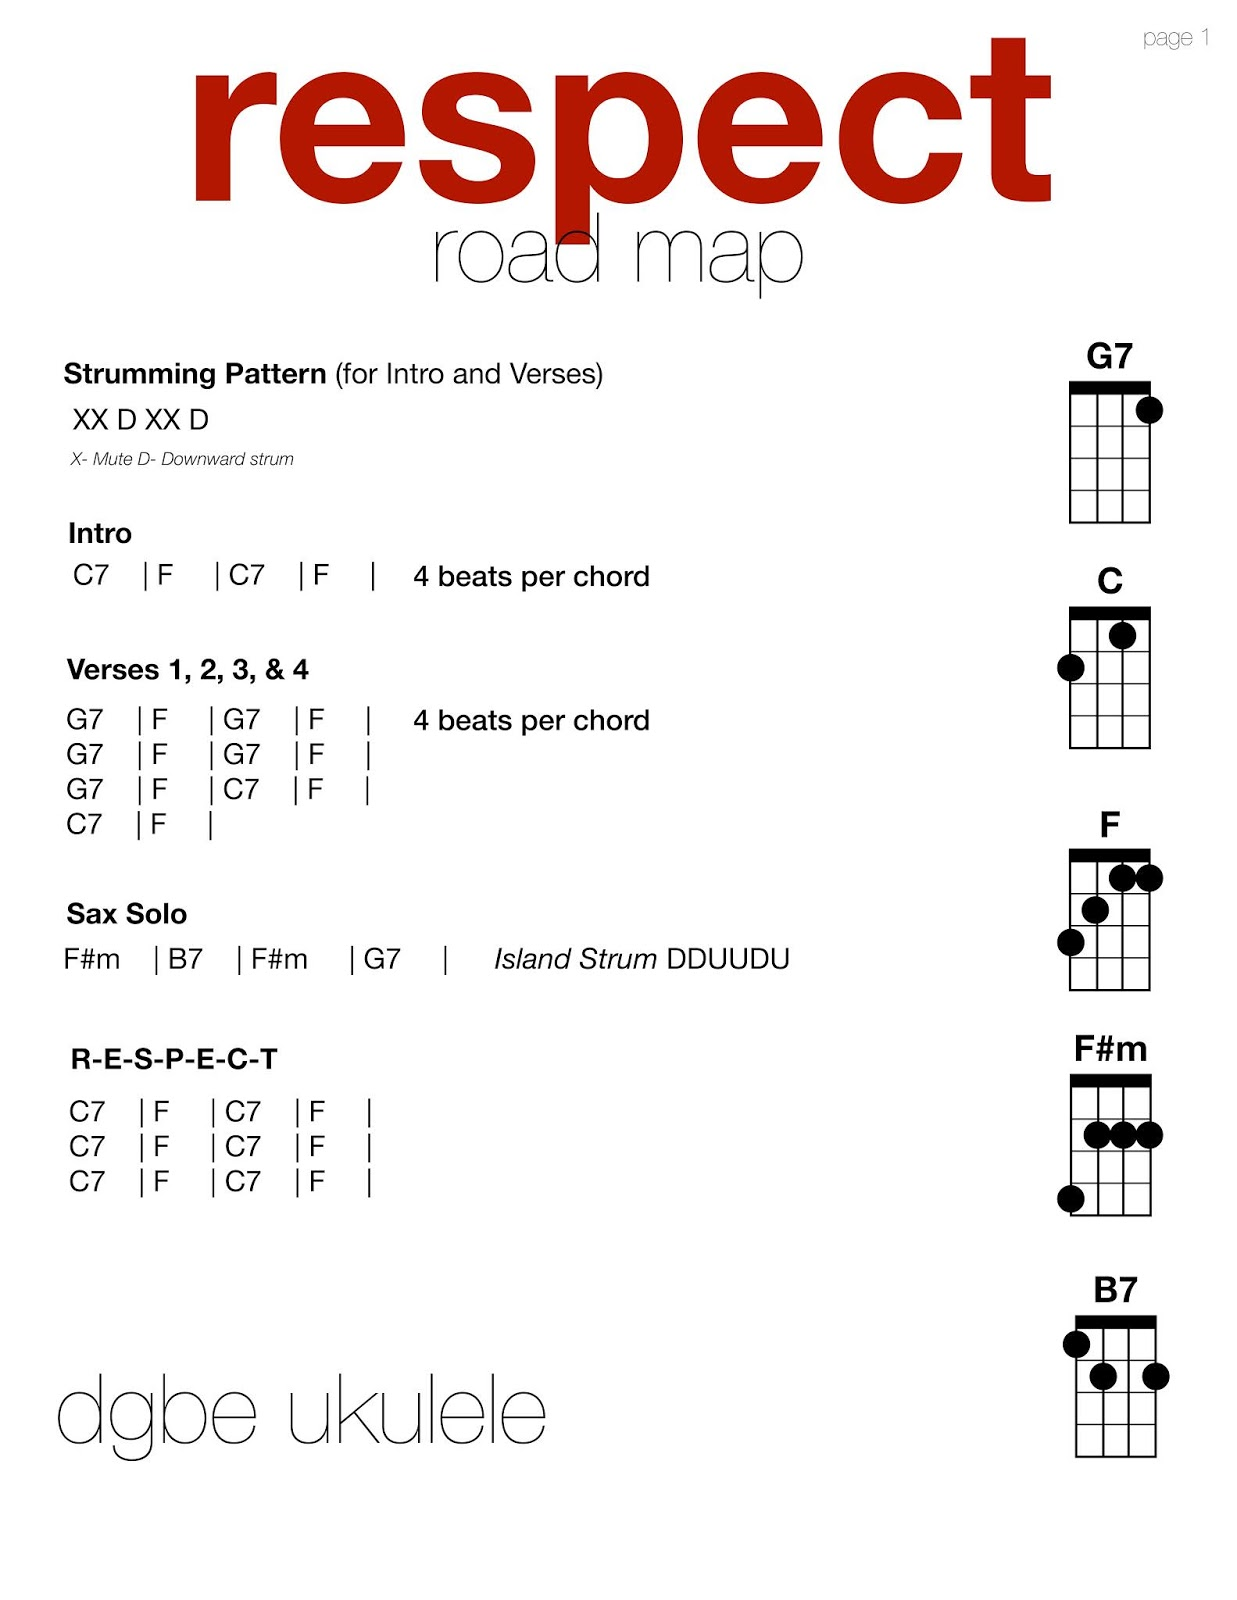 Smelly Cat Uke Smelly Cat Friends Chords And Songs Pinterest Guitars